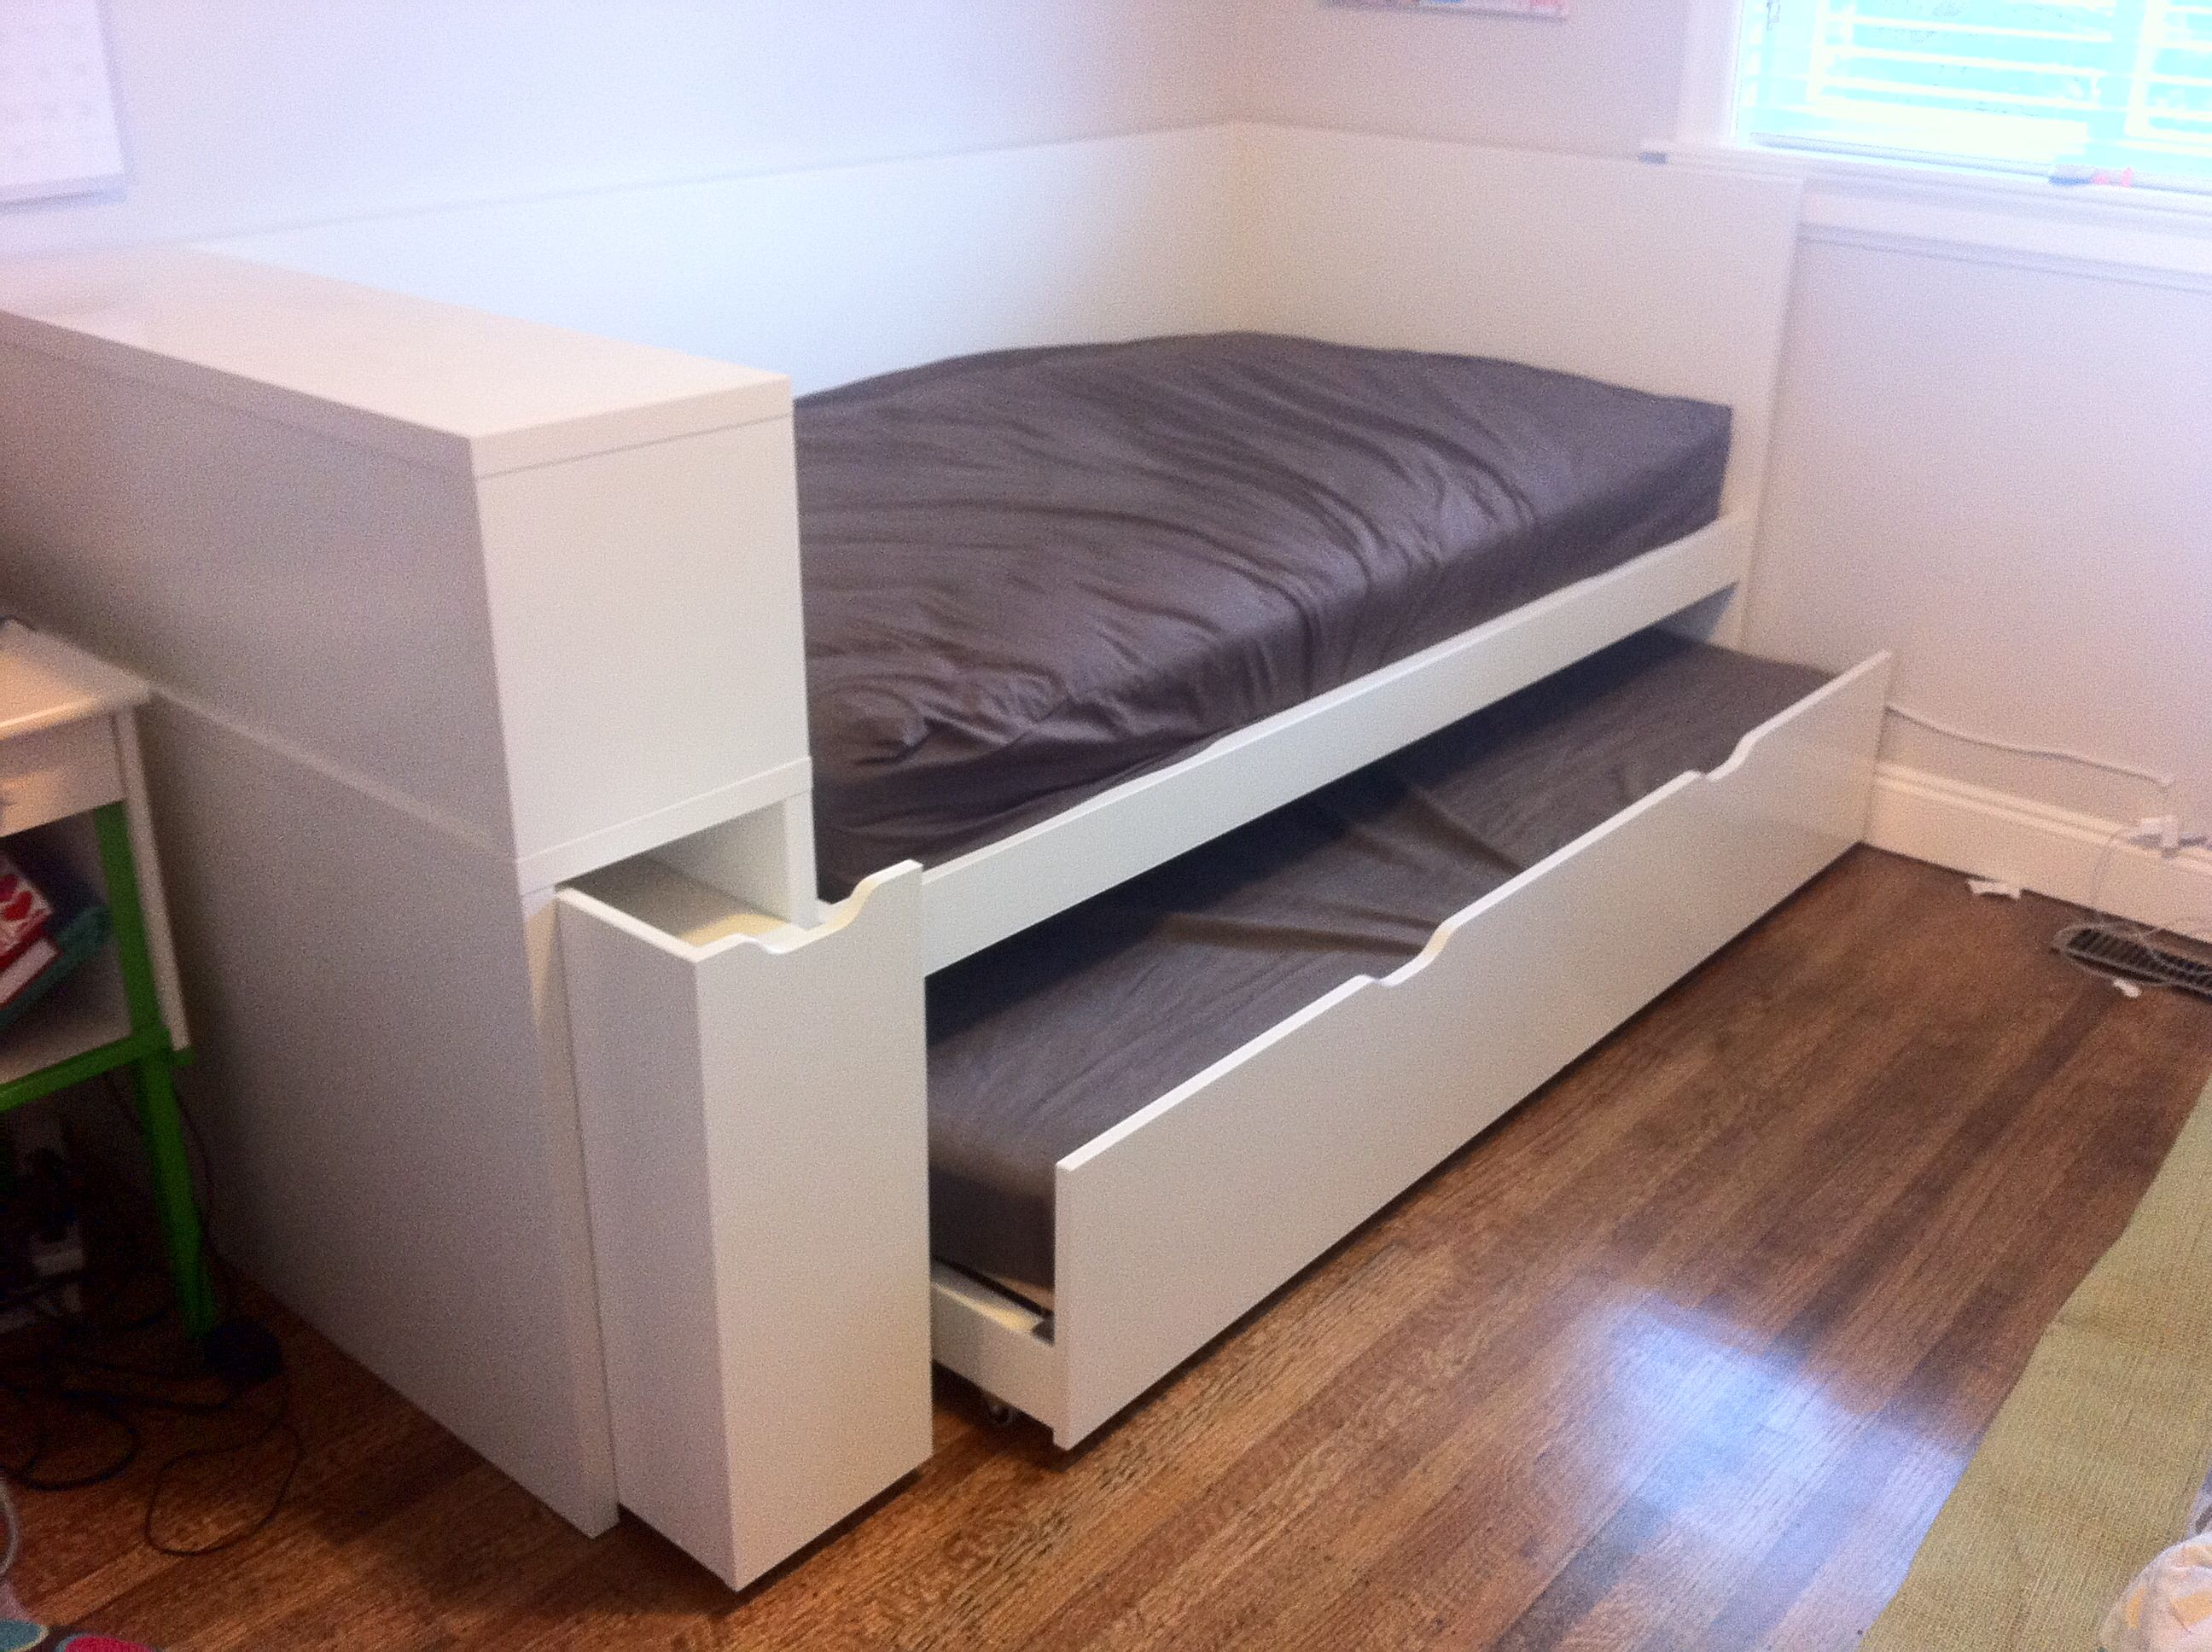 Ikea odda bed assembled in north vancouver ikea furniture assembly kinderzimmer - Ikea bett jugendzimmer ...